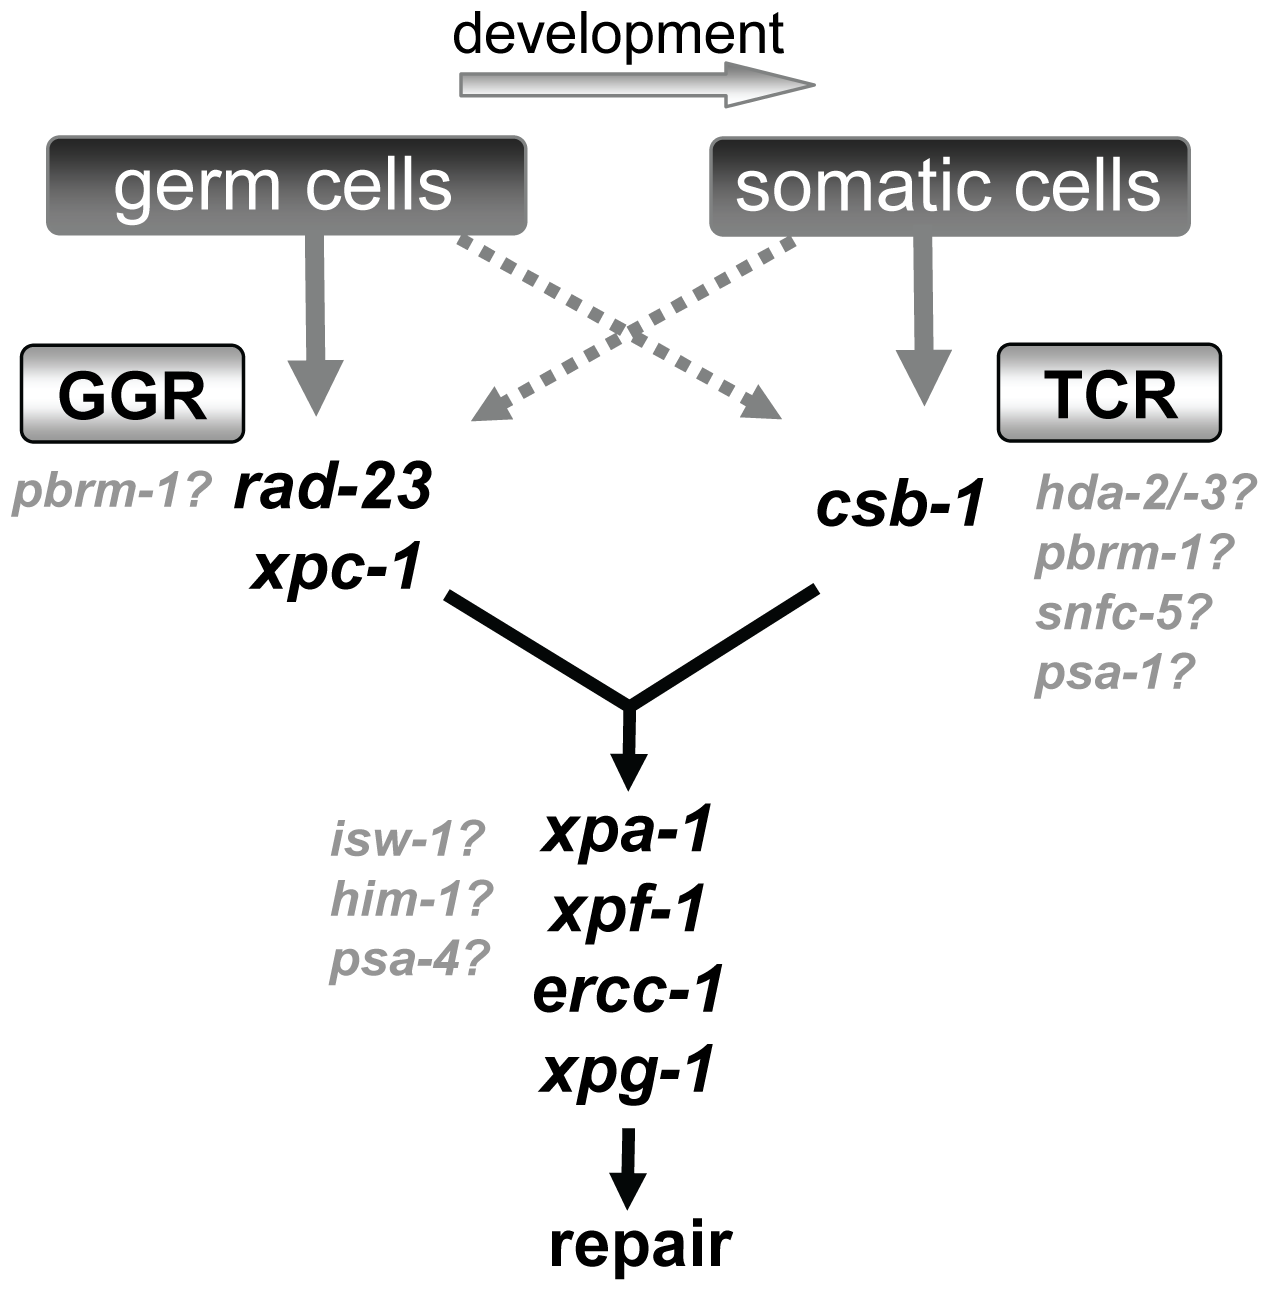 Model of NER function in germ cells and somatic cells.